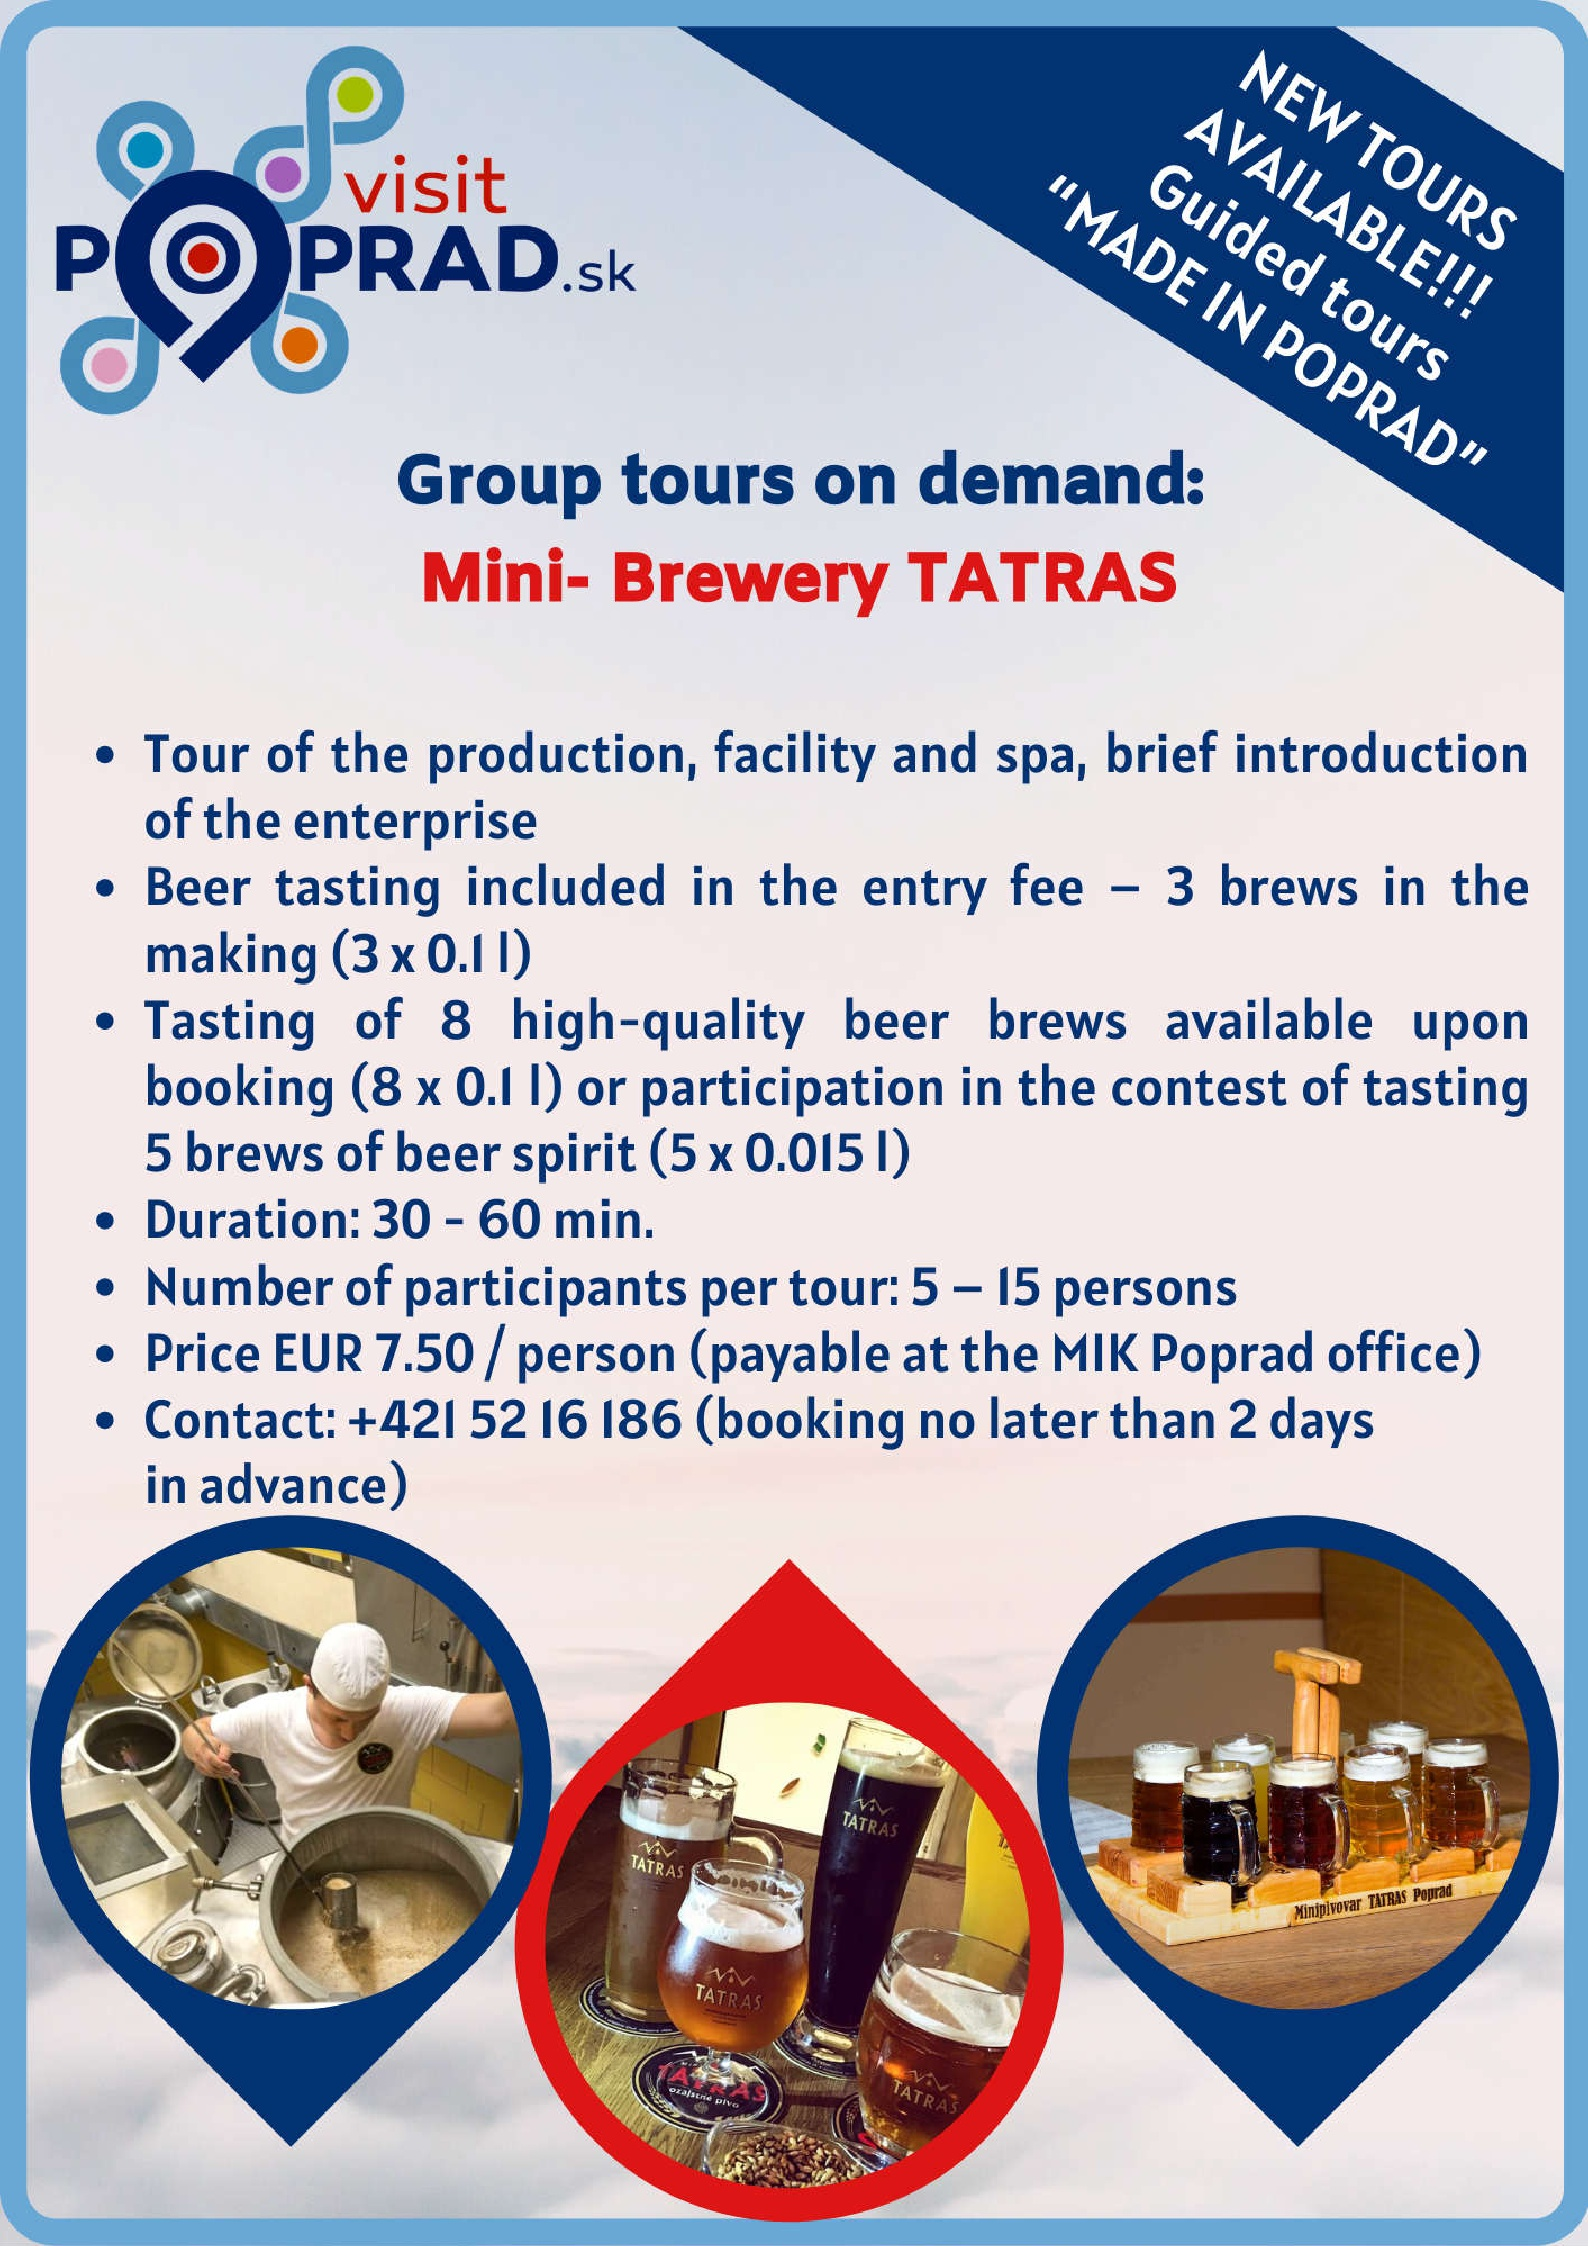 MADE IN POPRAD - Minibrewery TATRAS (Duration: 30 minutes), Price: 7.50 €